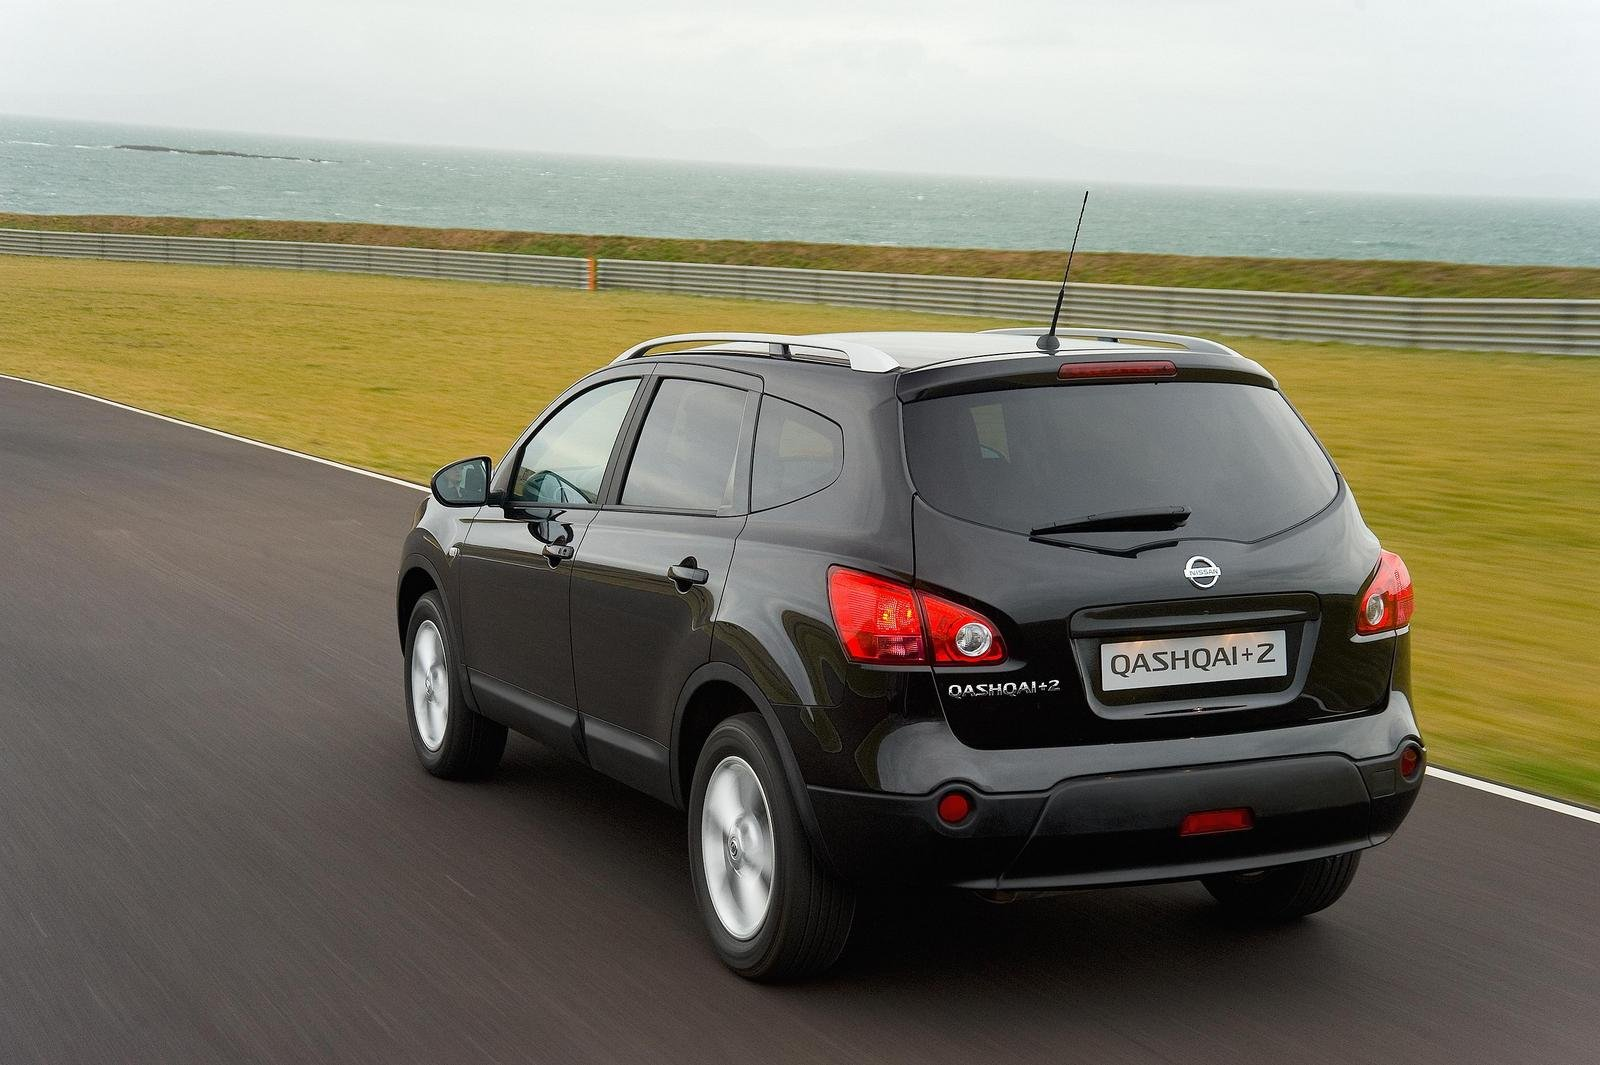 2009 nissan qashqai 2 picture 241793 car review top. Black Bedroom Furniture Sets. Home Design Ideas